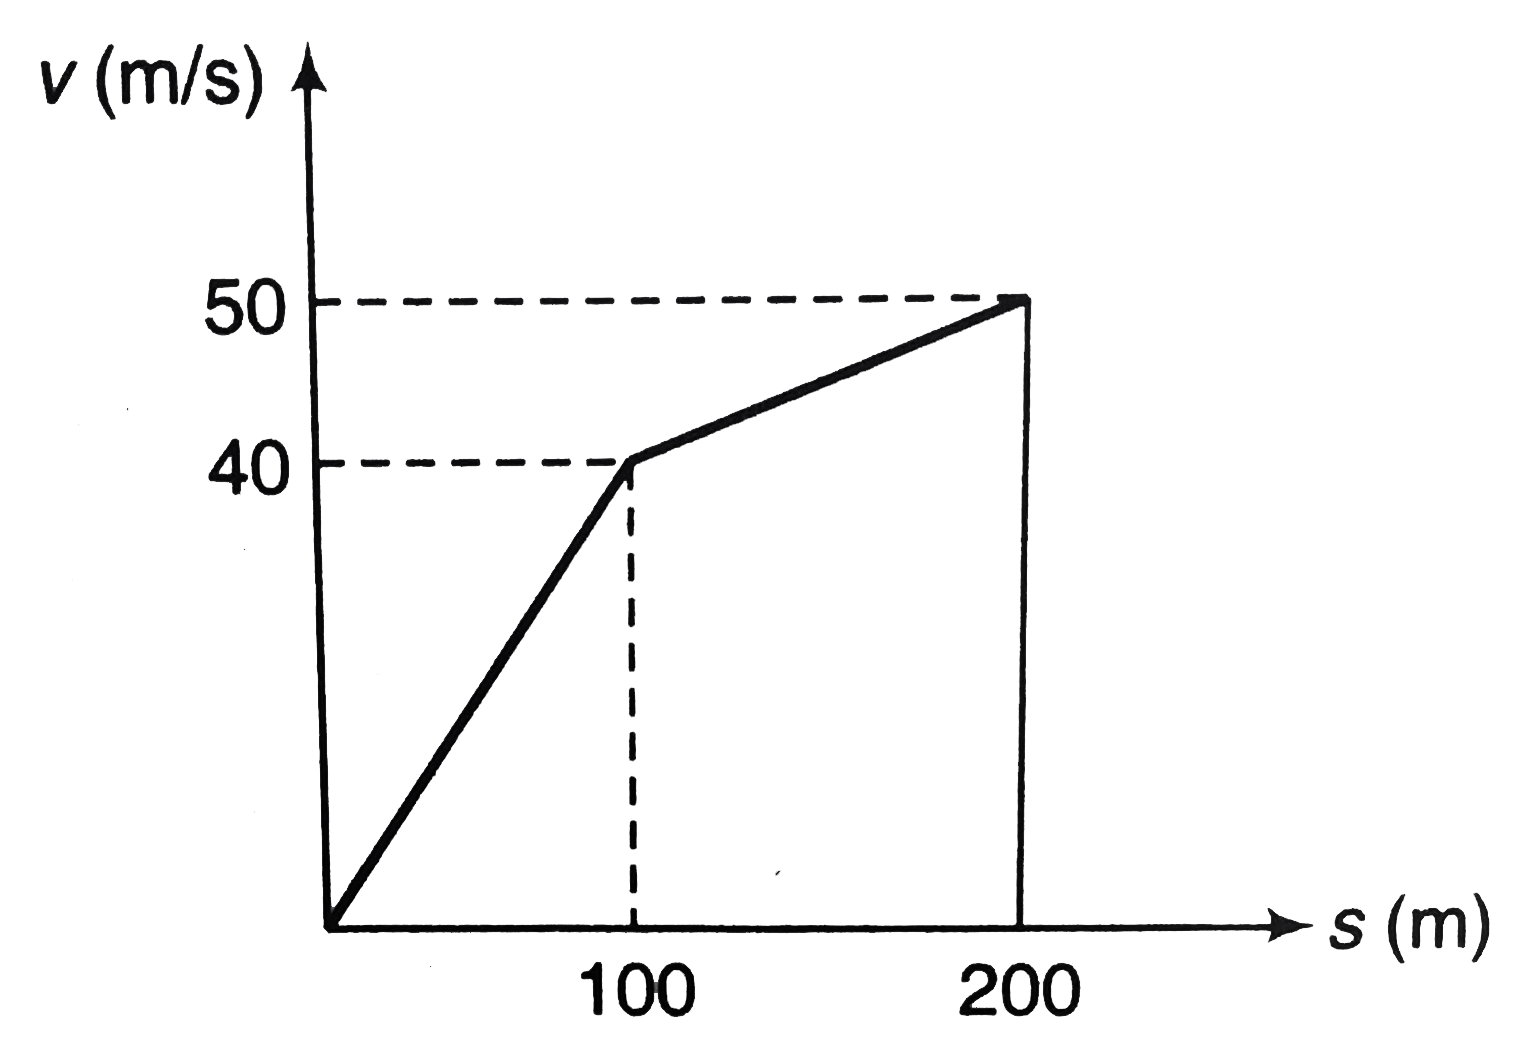 The v-s graph for an airplane travelling on a straight